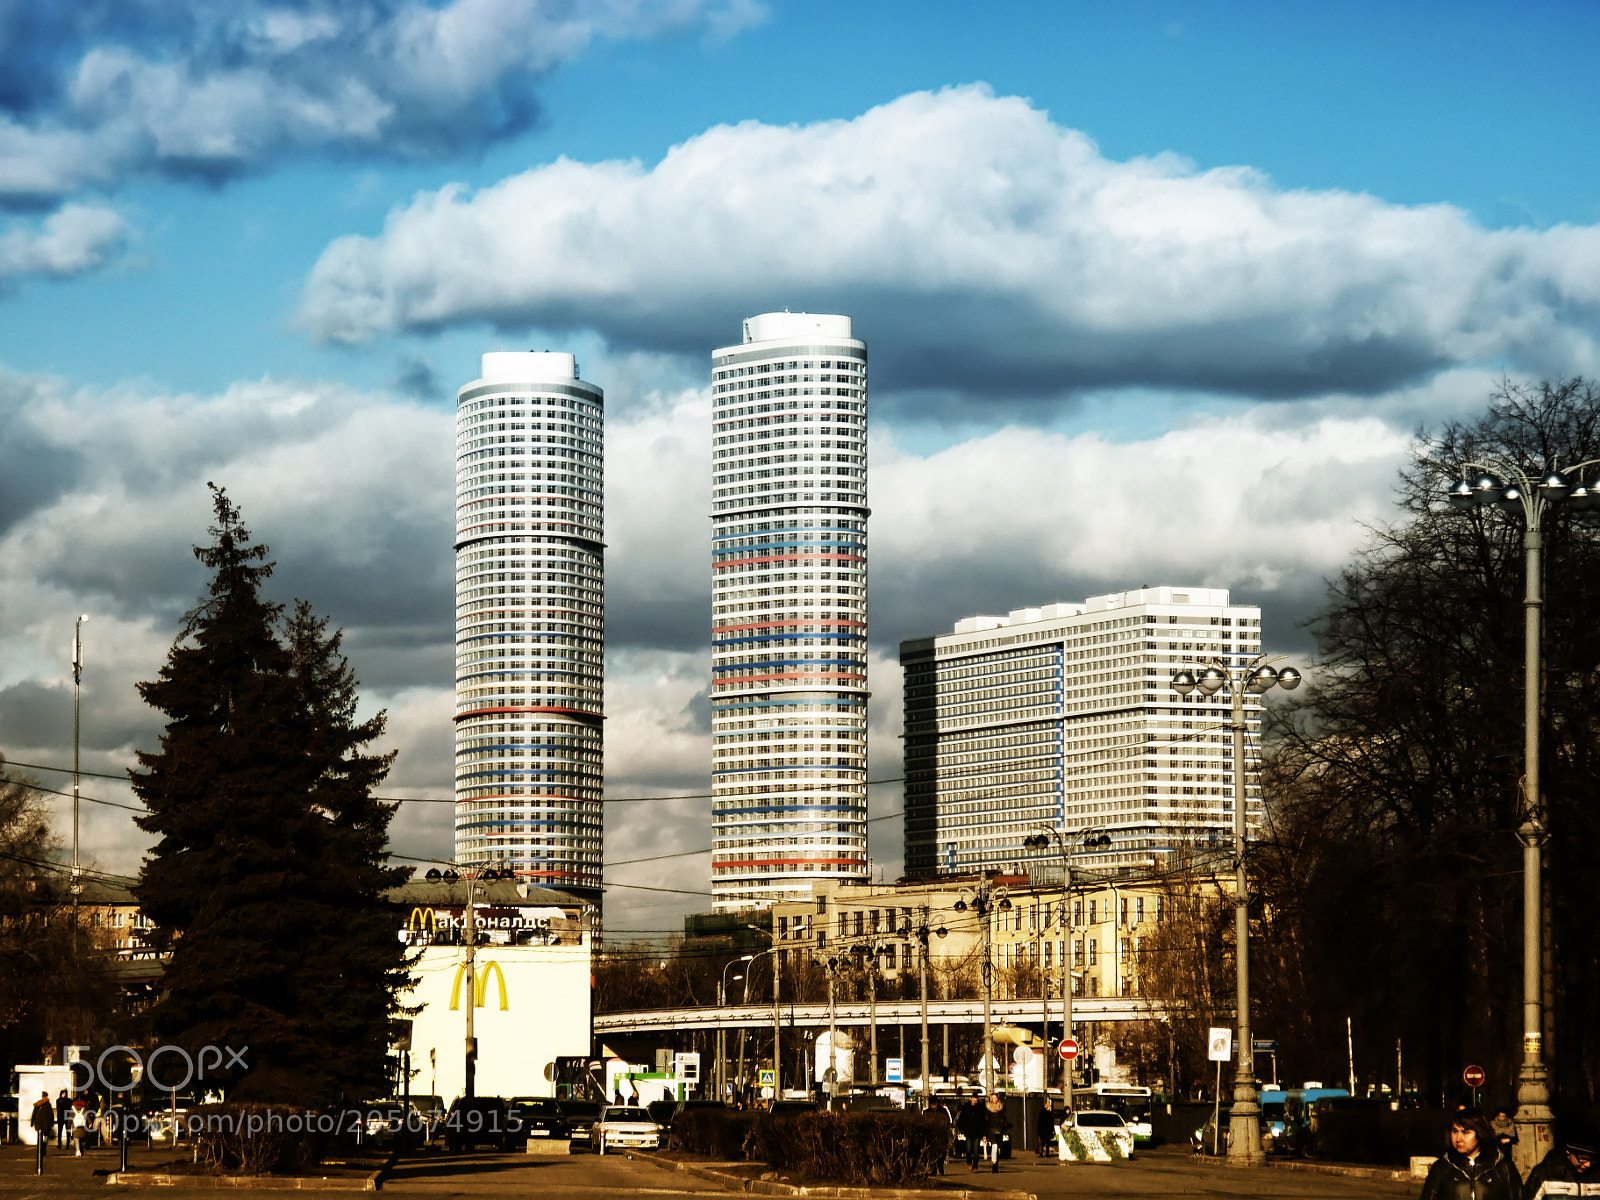 2 Towers, Panasonic DMC-FS62